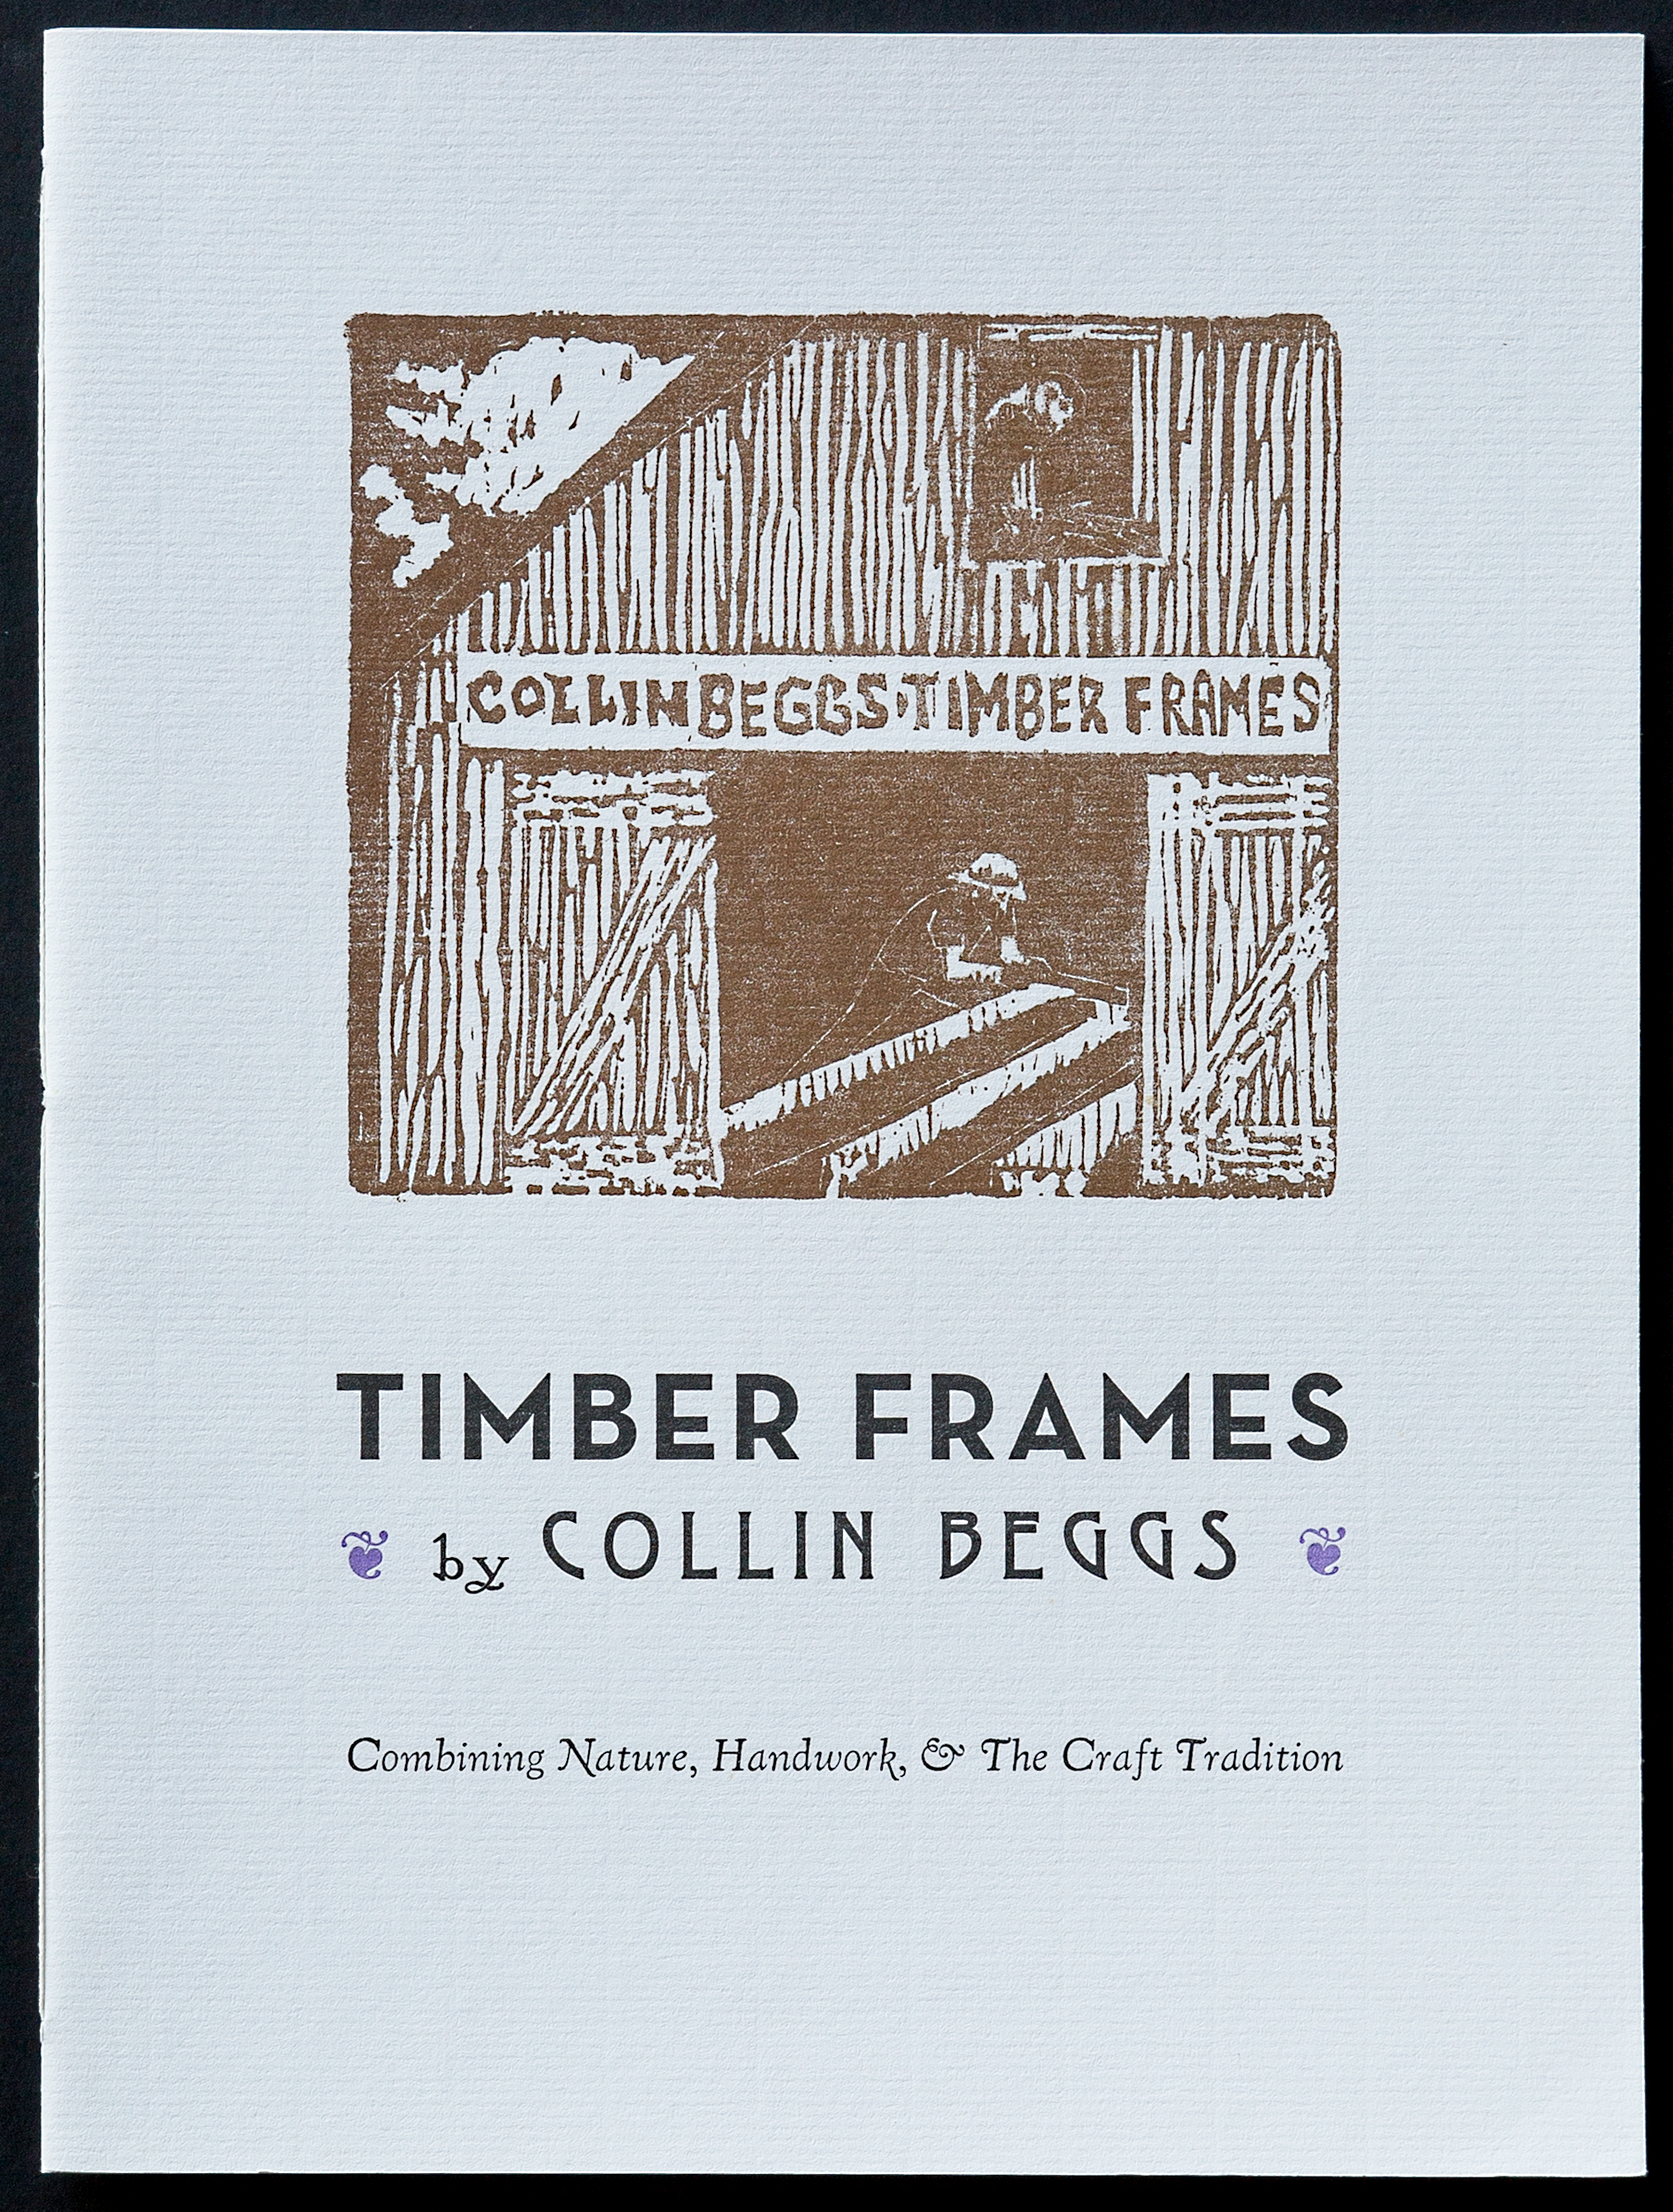 Letterpress printed brochure for a timber framer who was just starting out and wanted an entirely hand-printed eight page brochure. The image is a woodcut by a friend of his.